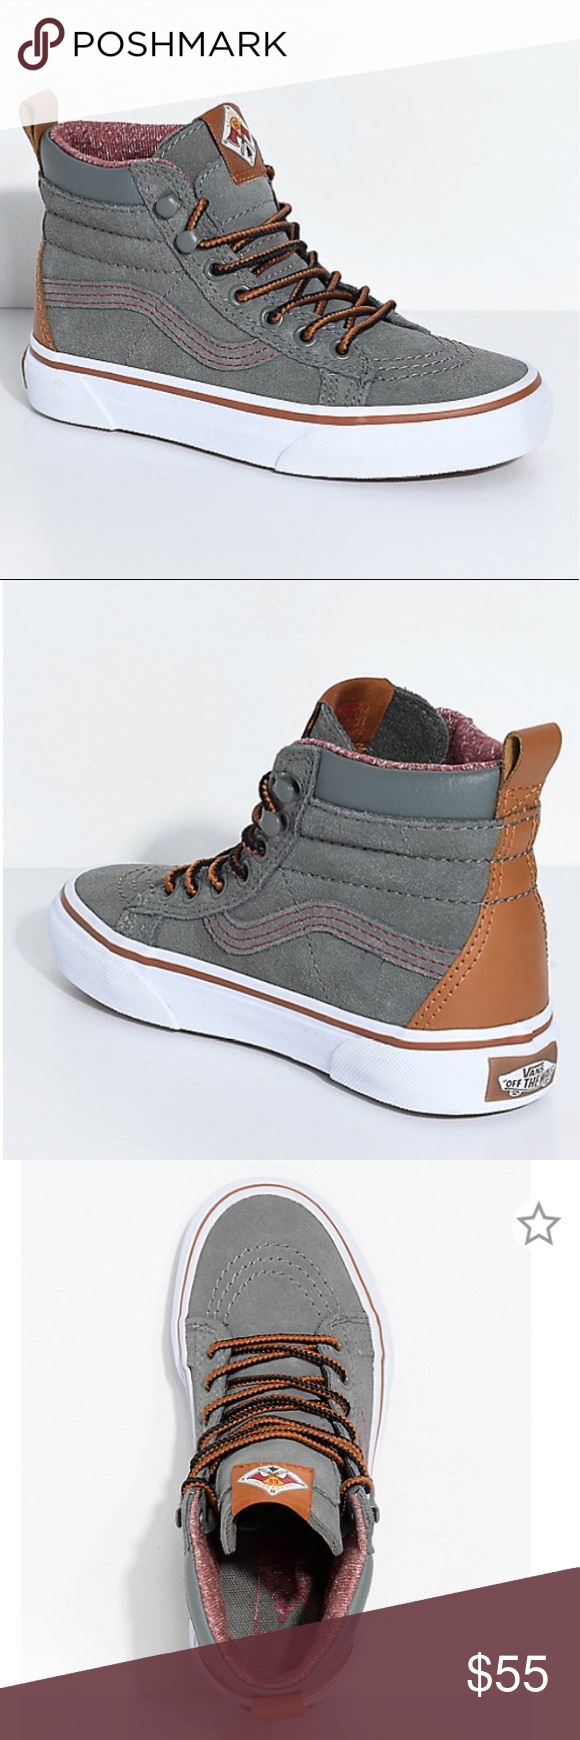 e0dff6f4137 HTF Vans All Weather MTE - Brand New Hard to find! Sk8-Hi MTE castor ...